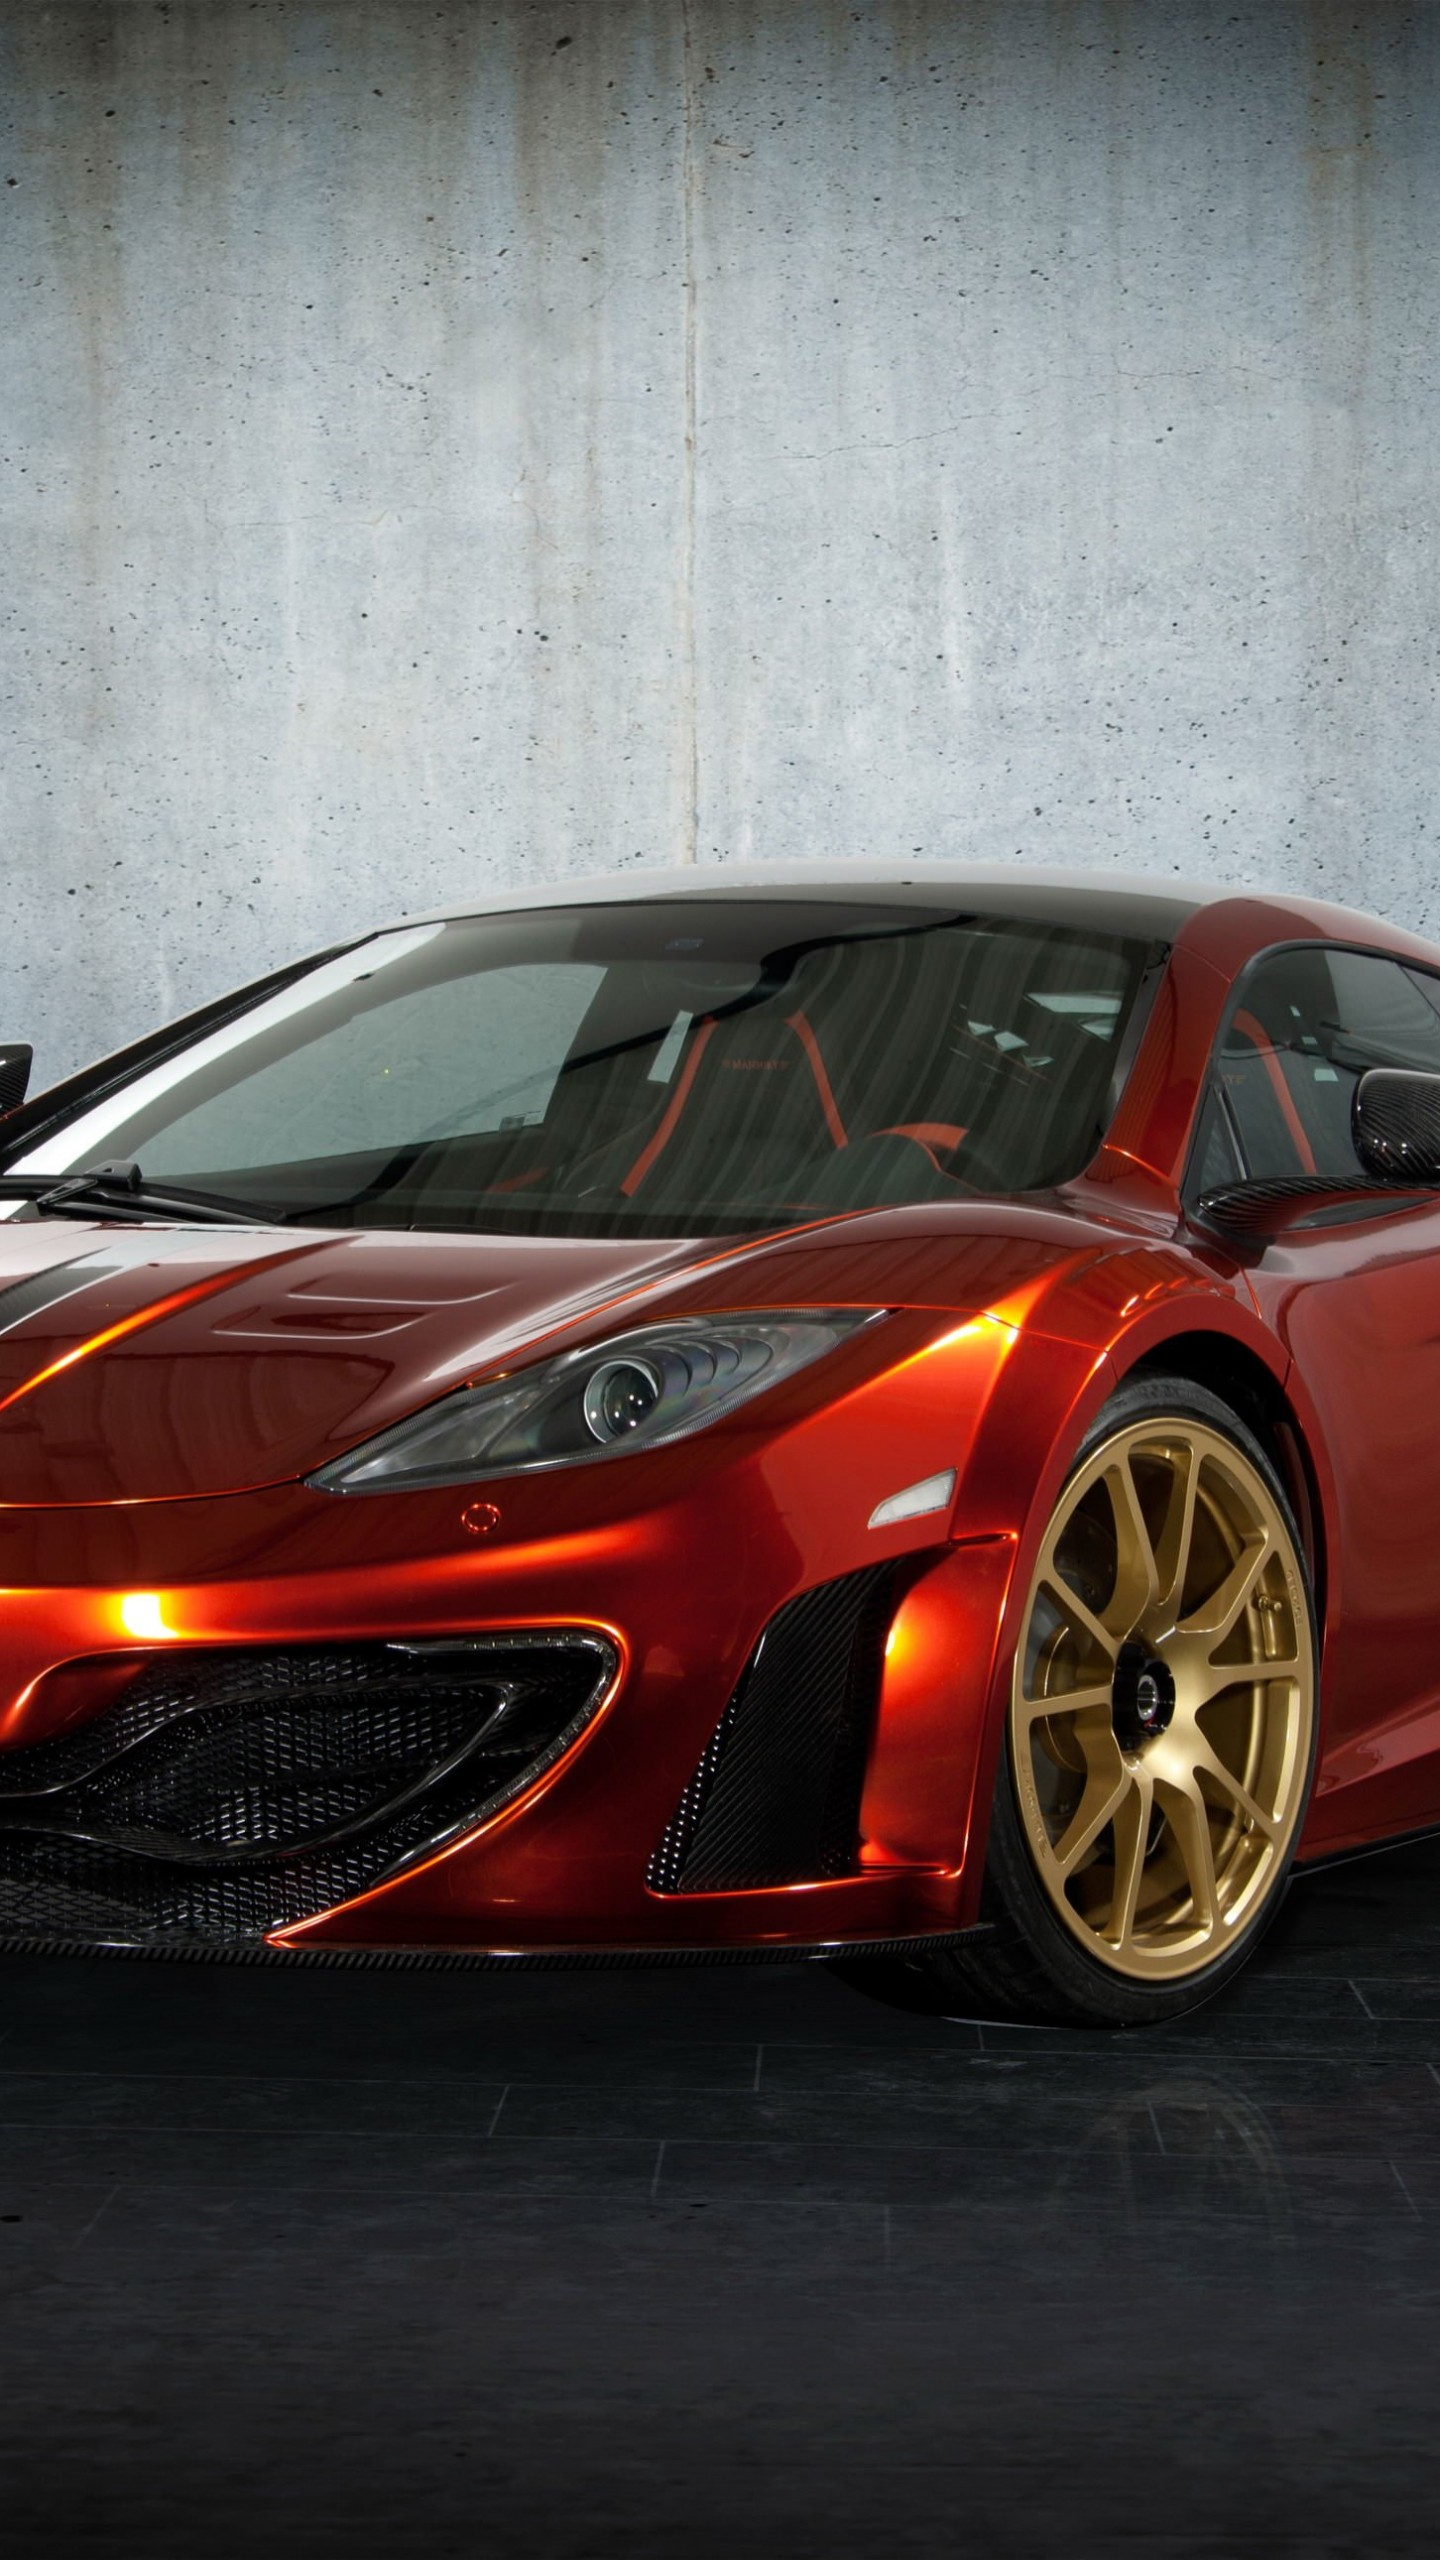 McLaren MP4-12Cf By Mansory Wallpaper for LG G3